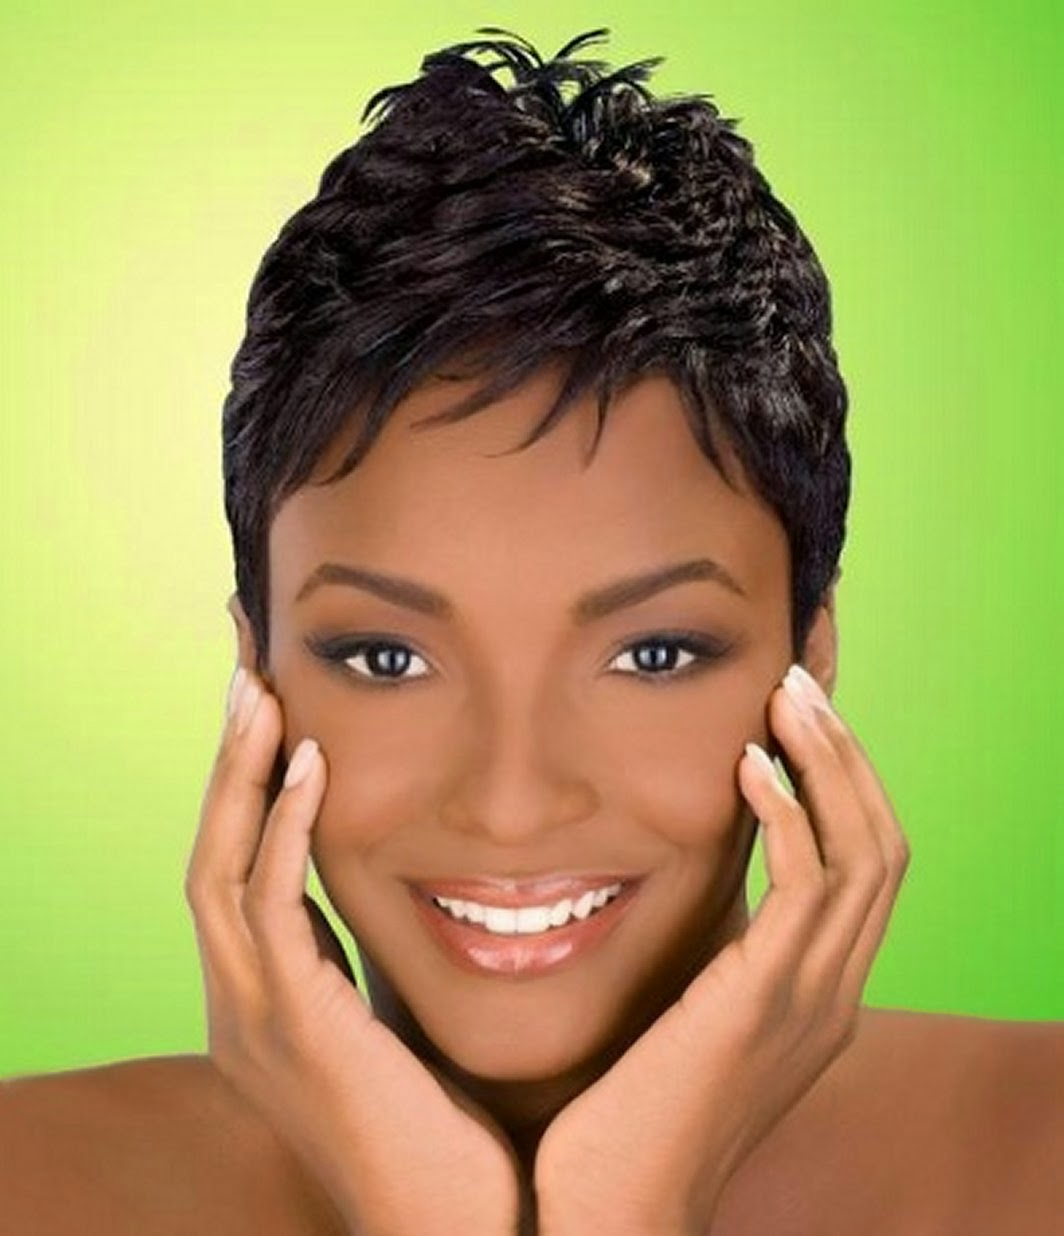 Swell Good Short Hairstyles For African American Women Hairstyle Inspiration Daily Dogsangcom